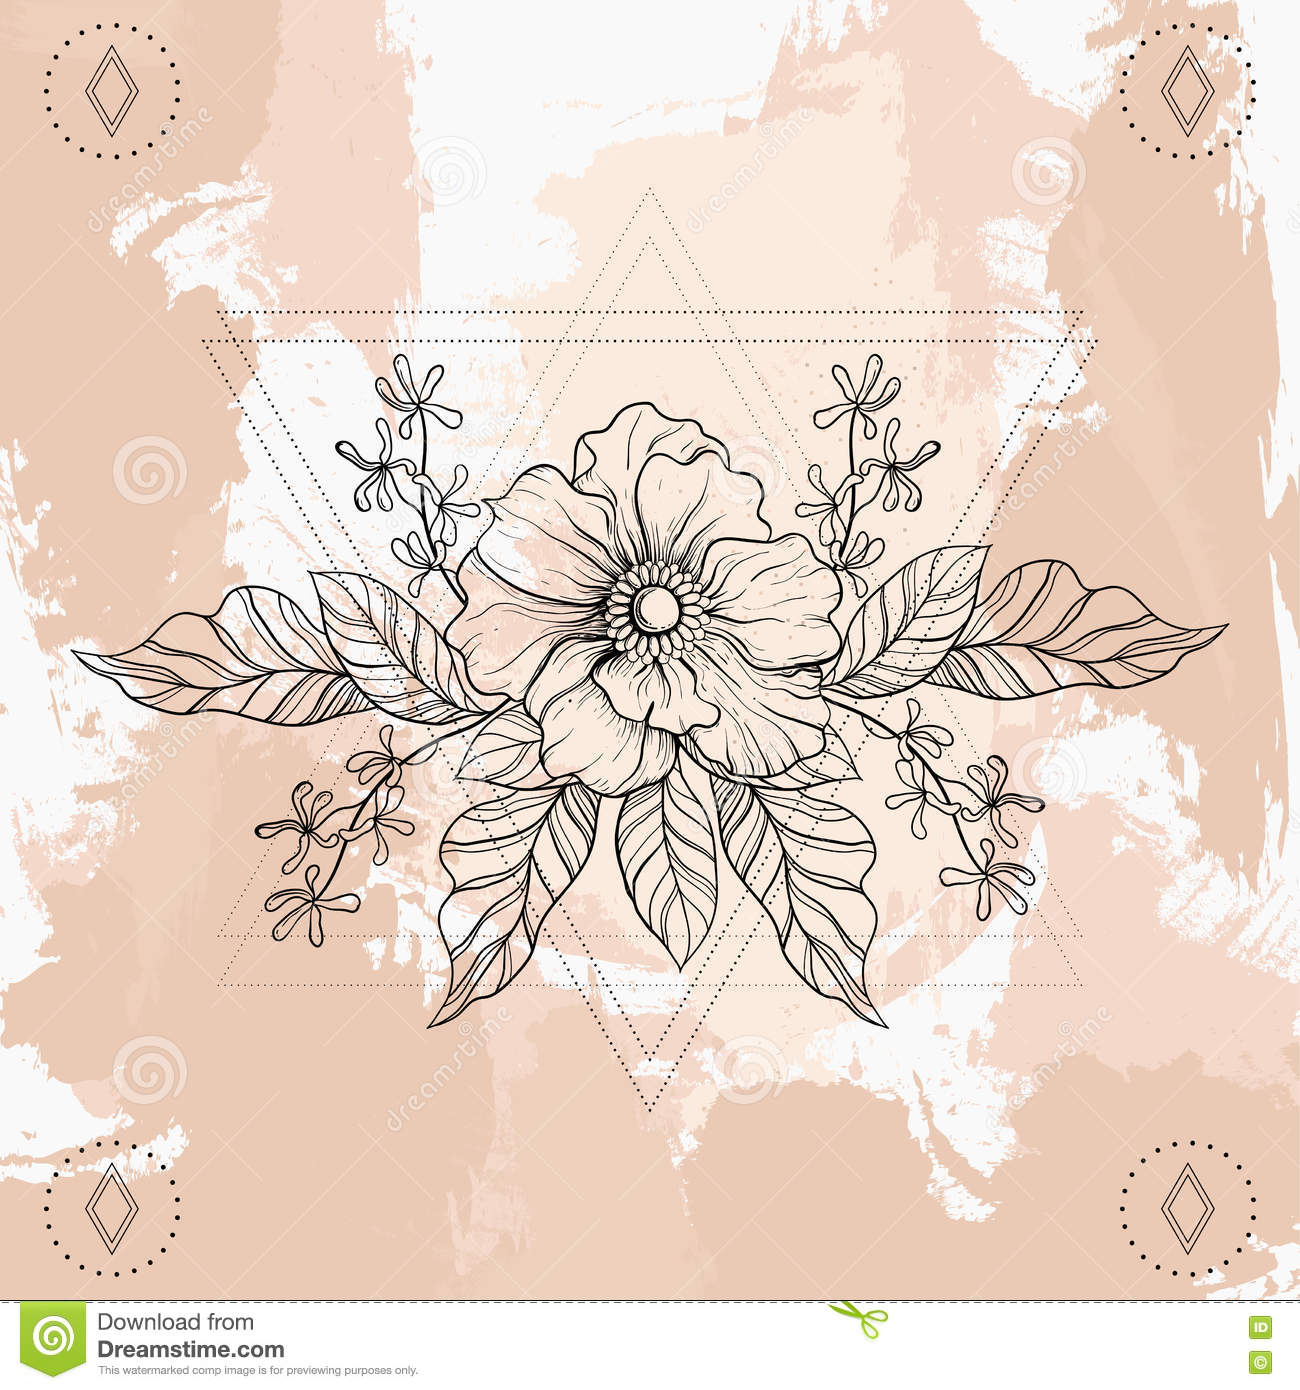 48a1fecc20bd7 Hand drawn boho tattoo. Blackwork flower in hipster triangles frame. Vector  illustration, tattoo sketch on grunge for t-shirt print, poster, textile.  Line ...